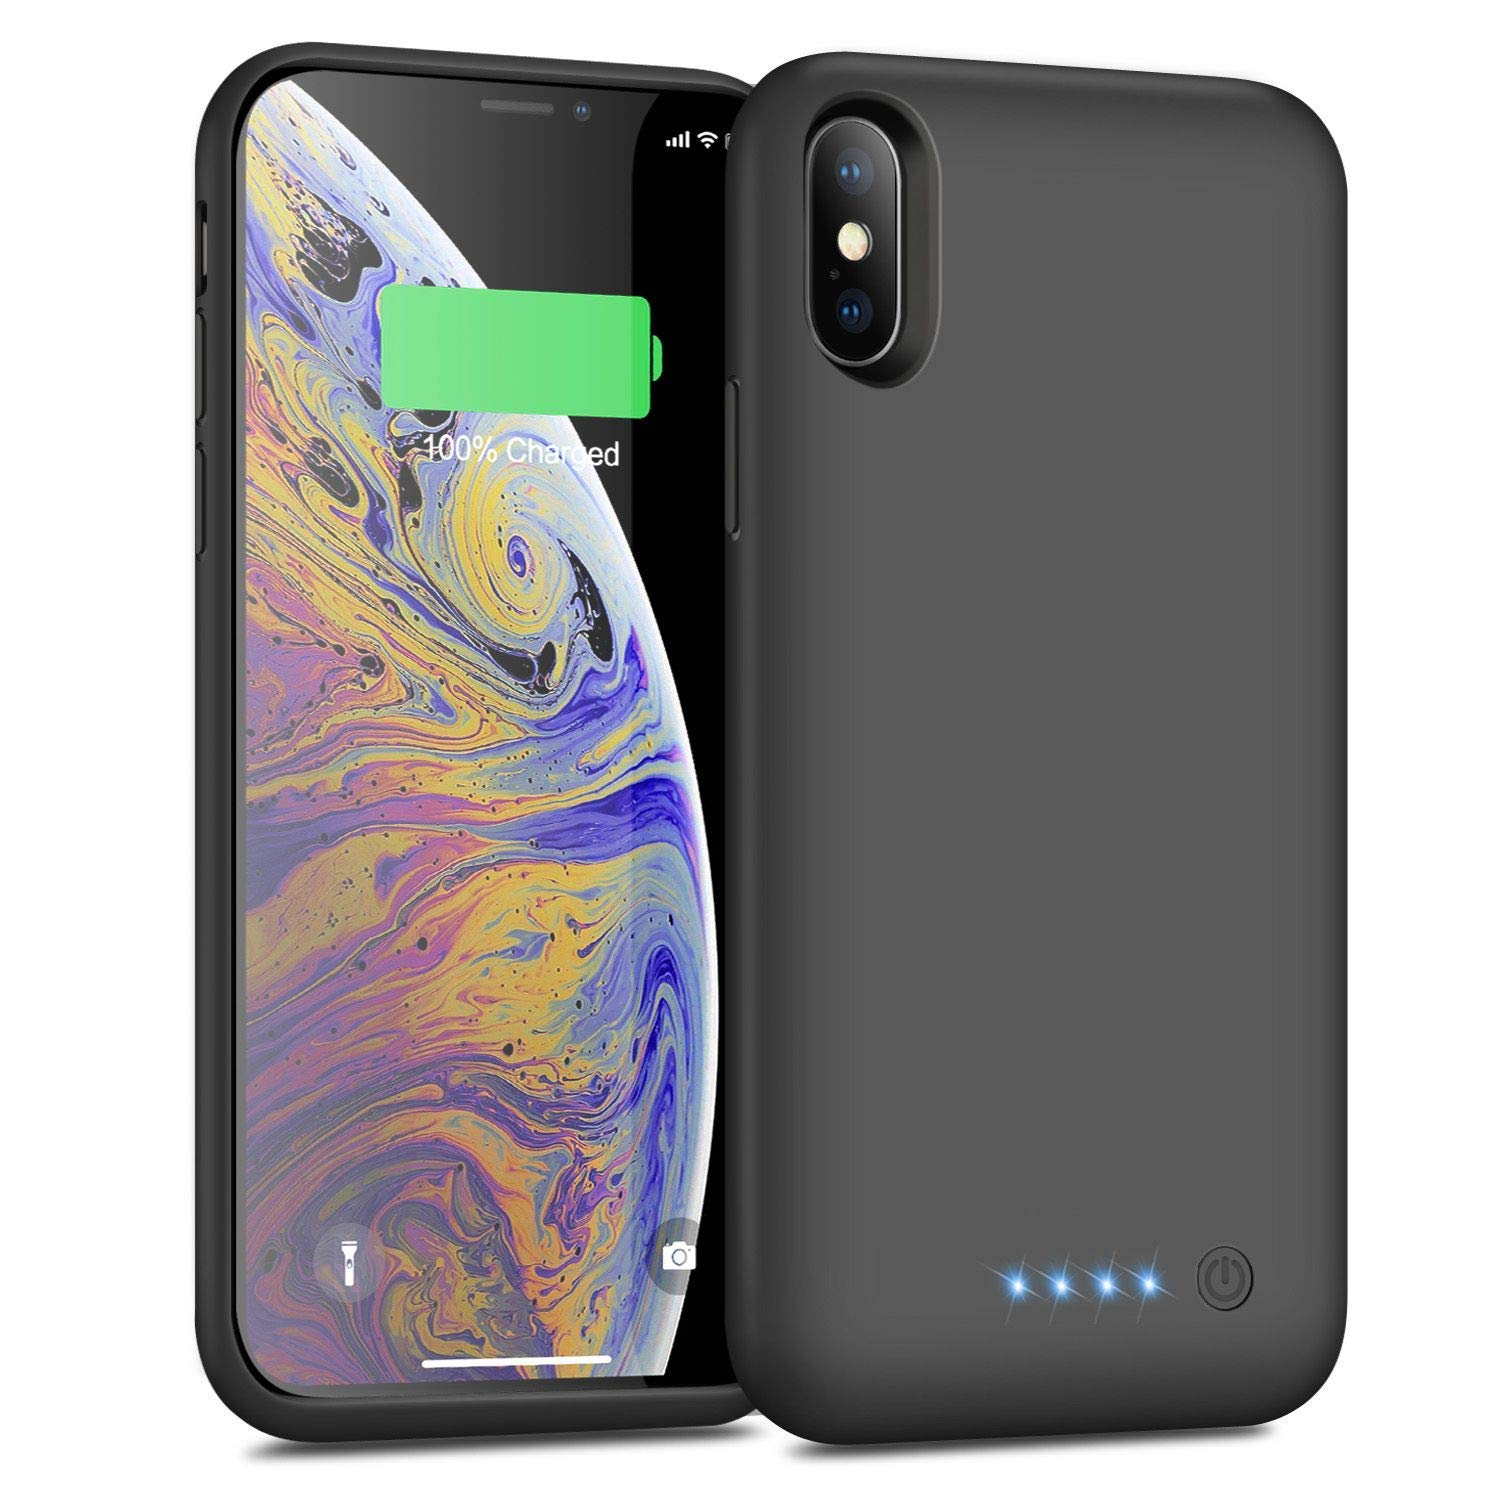 Funda Con Bateria de 6500mah para Apple Iphone X/Xs YACIKOS [7NPCP448]